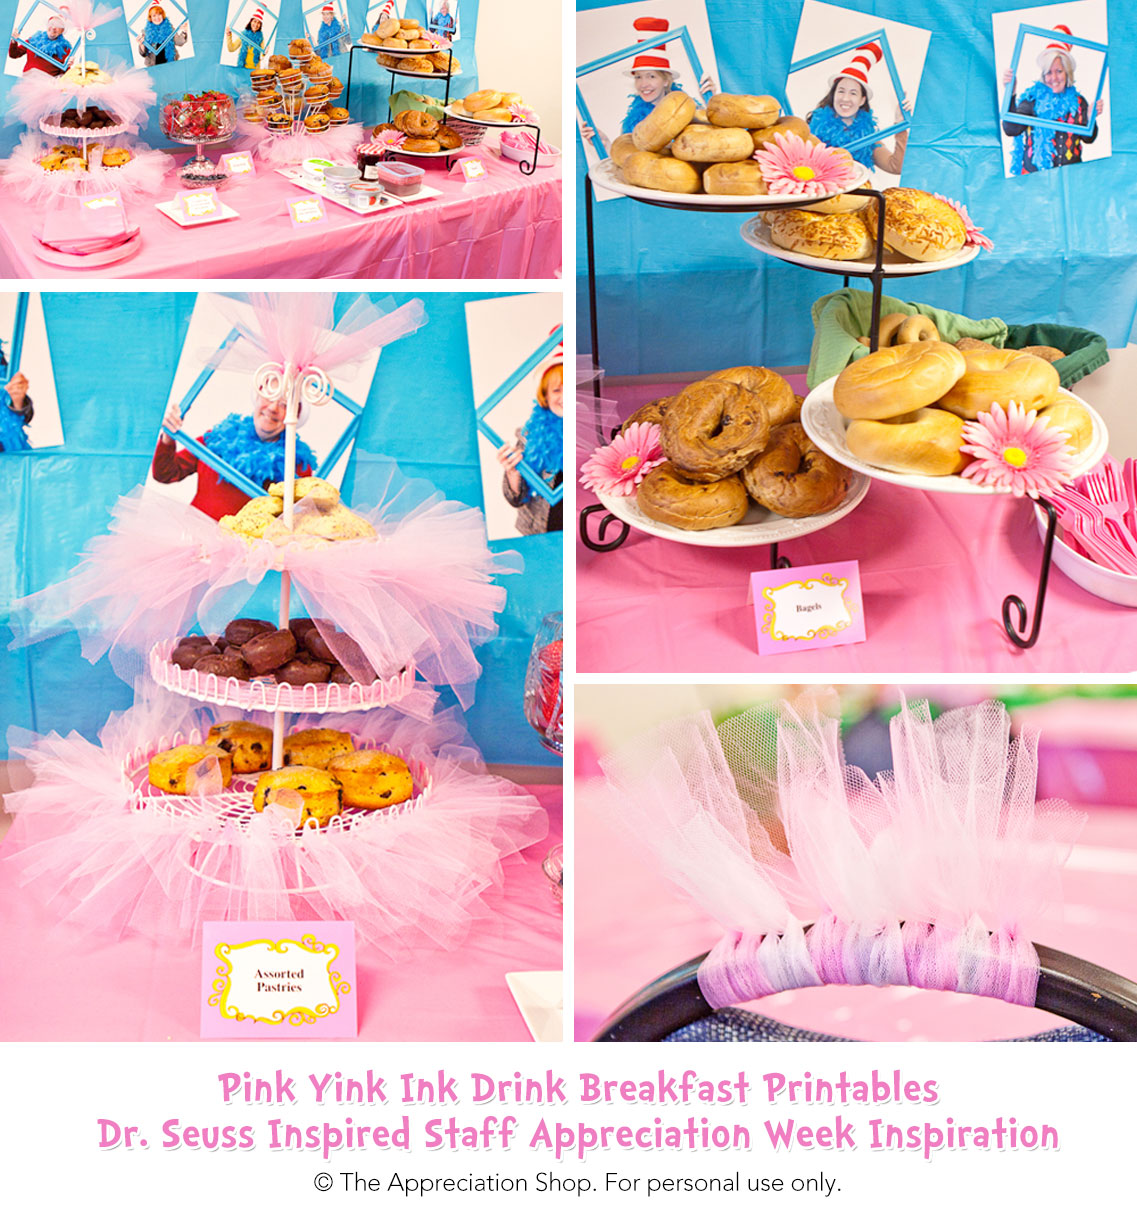 Pink Yink Breakfast Printables - The Appreciation Shop